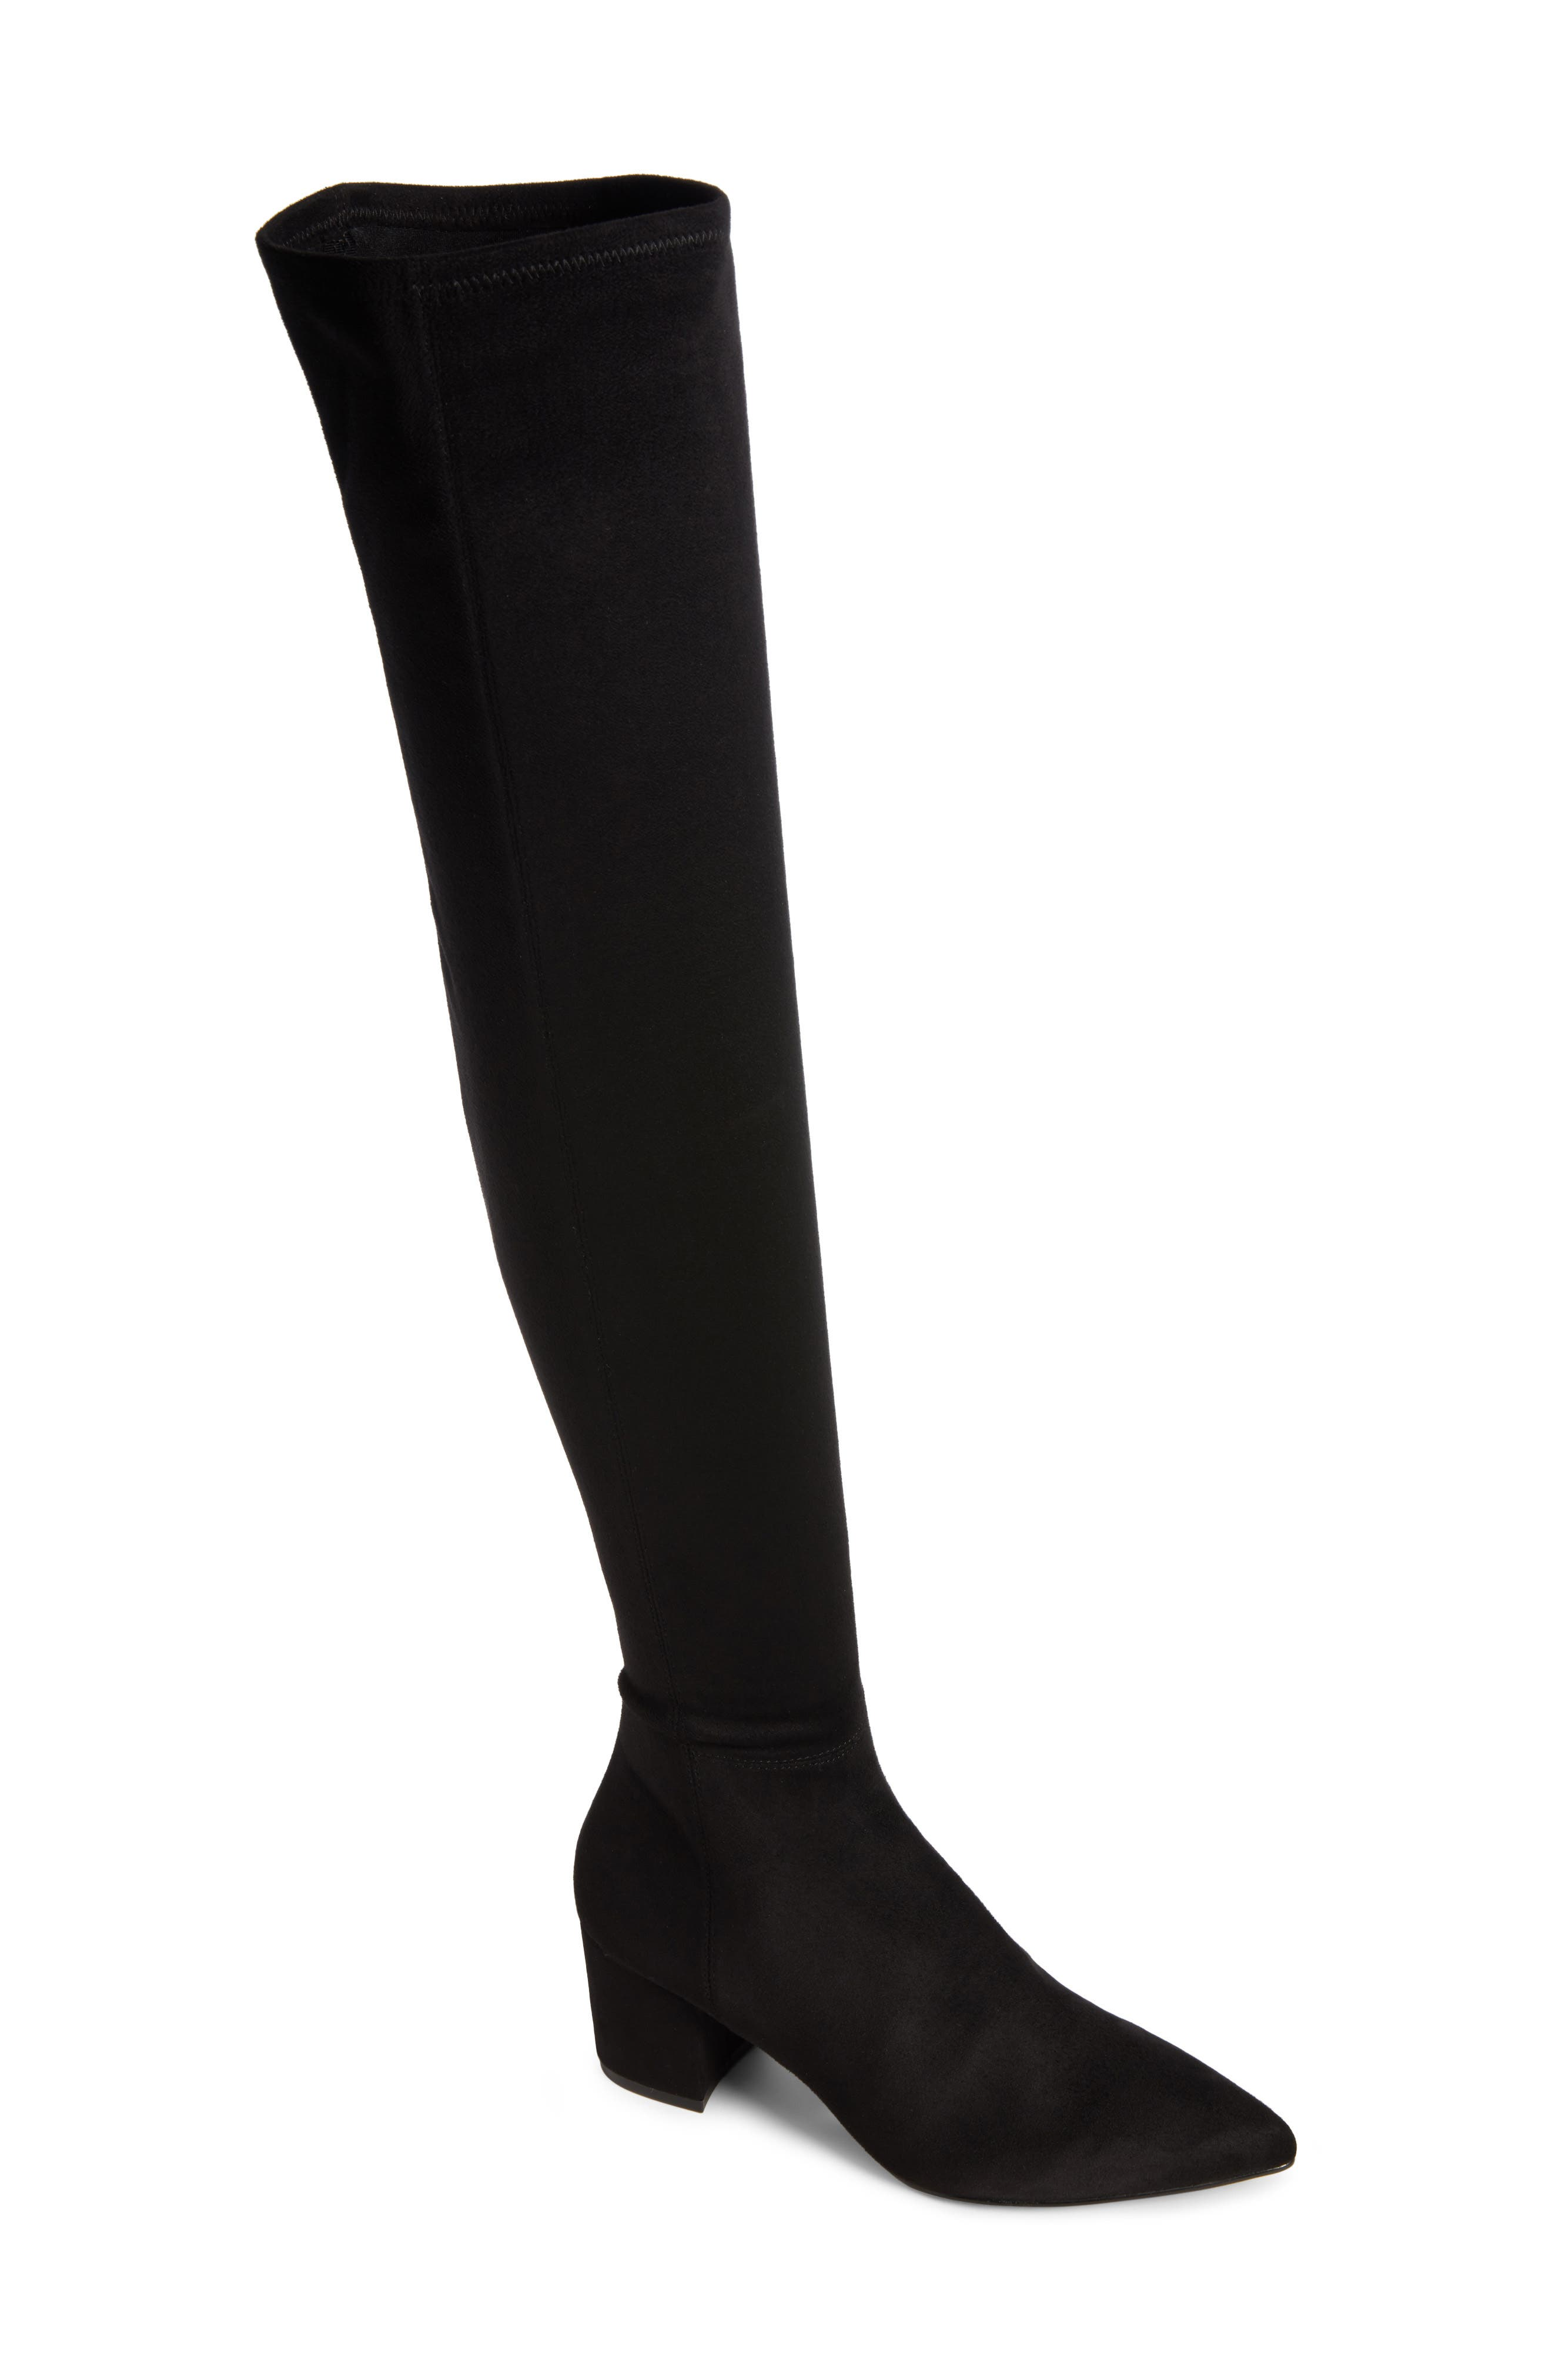 STEVE MADDEN, Brinkley Over the Knee Stretch Boot, Main thumbnail 1, color, 001